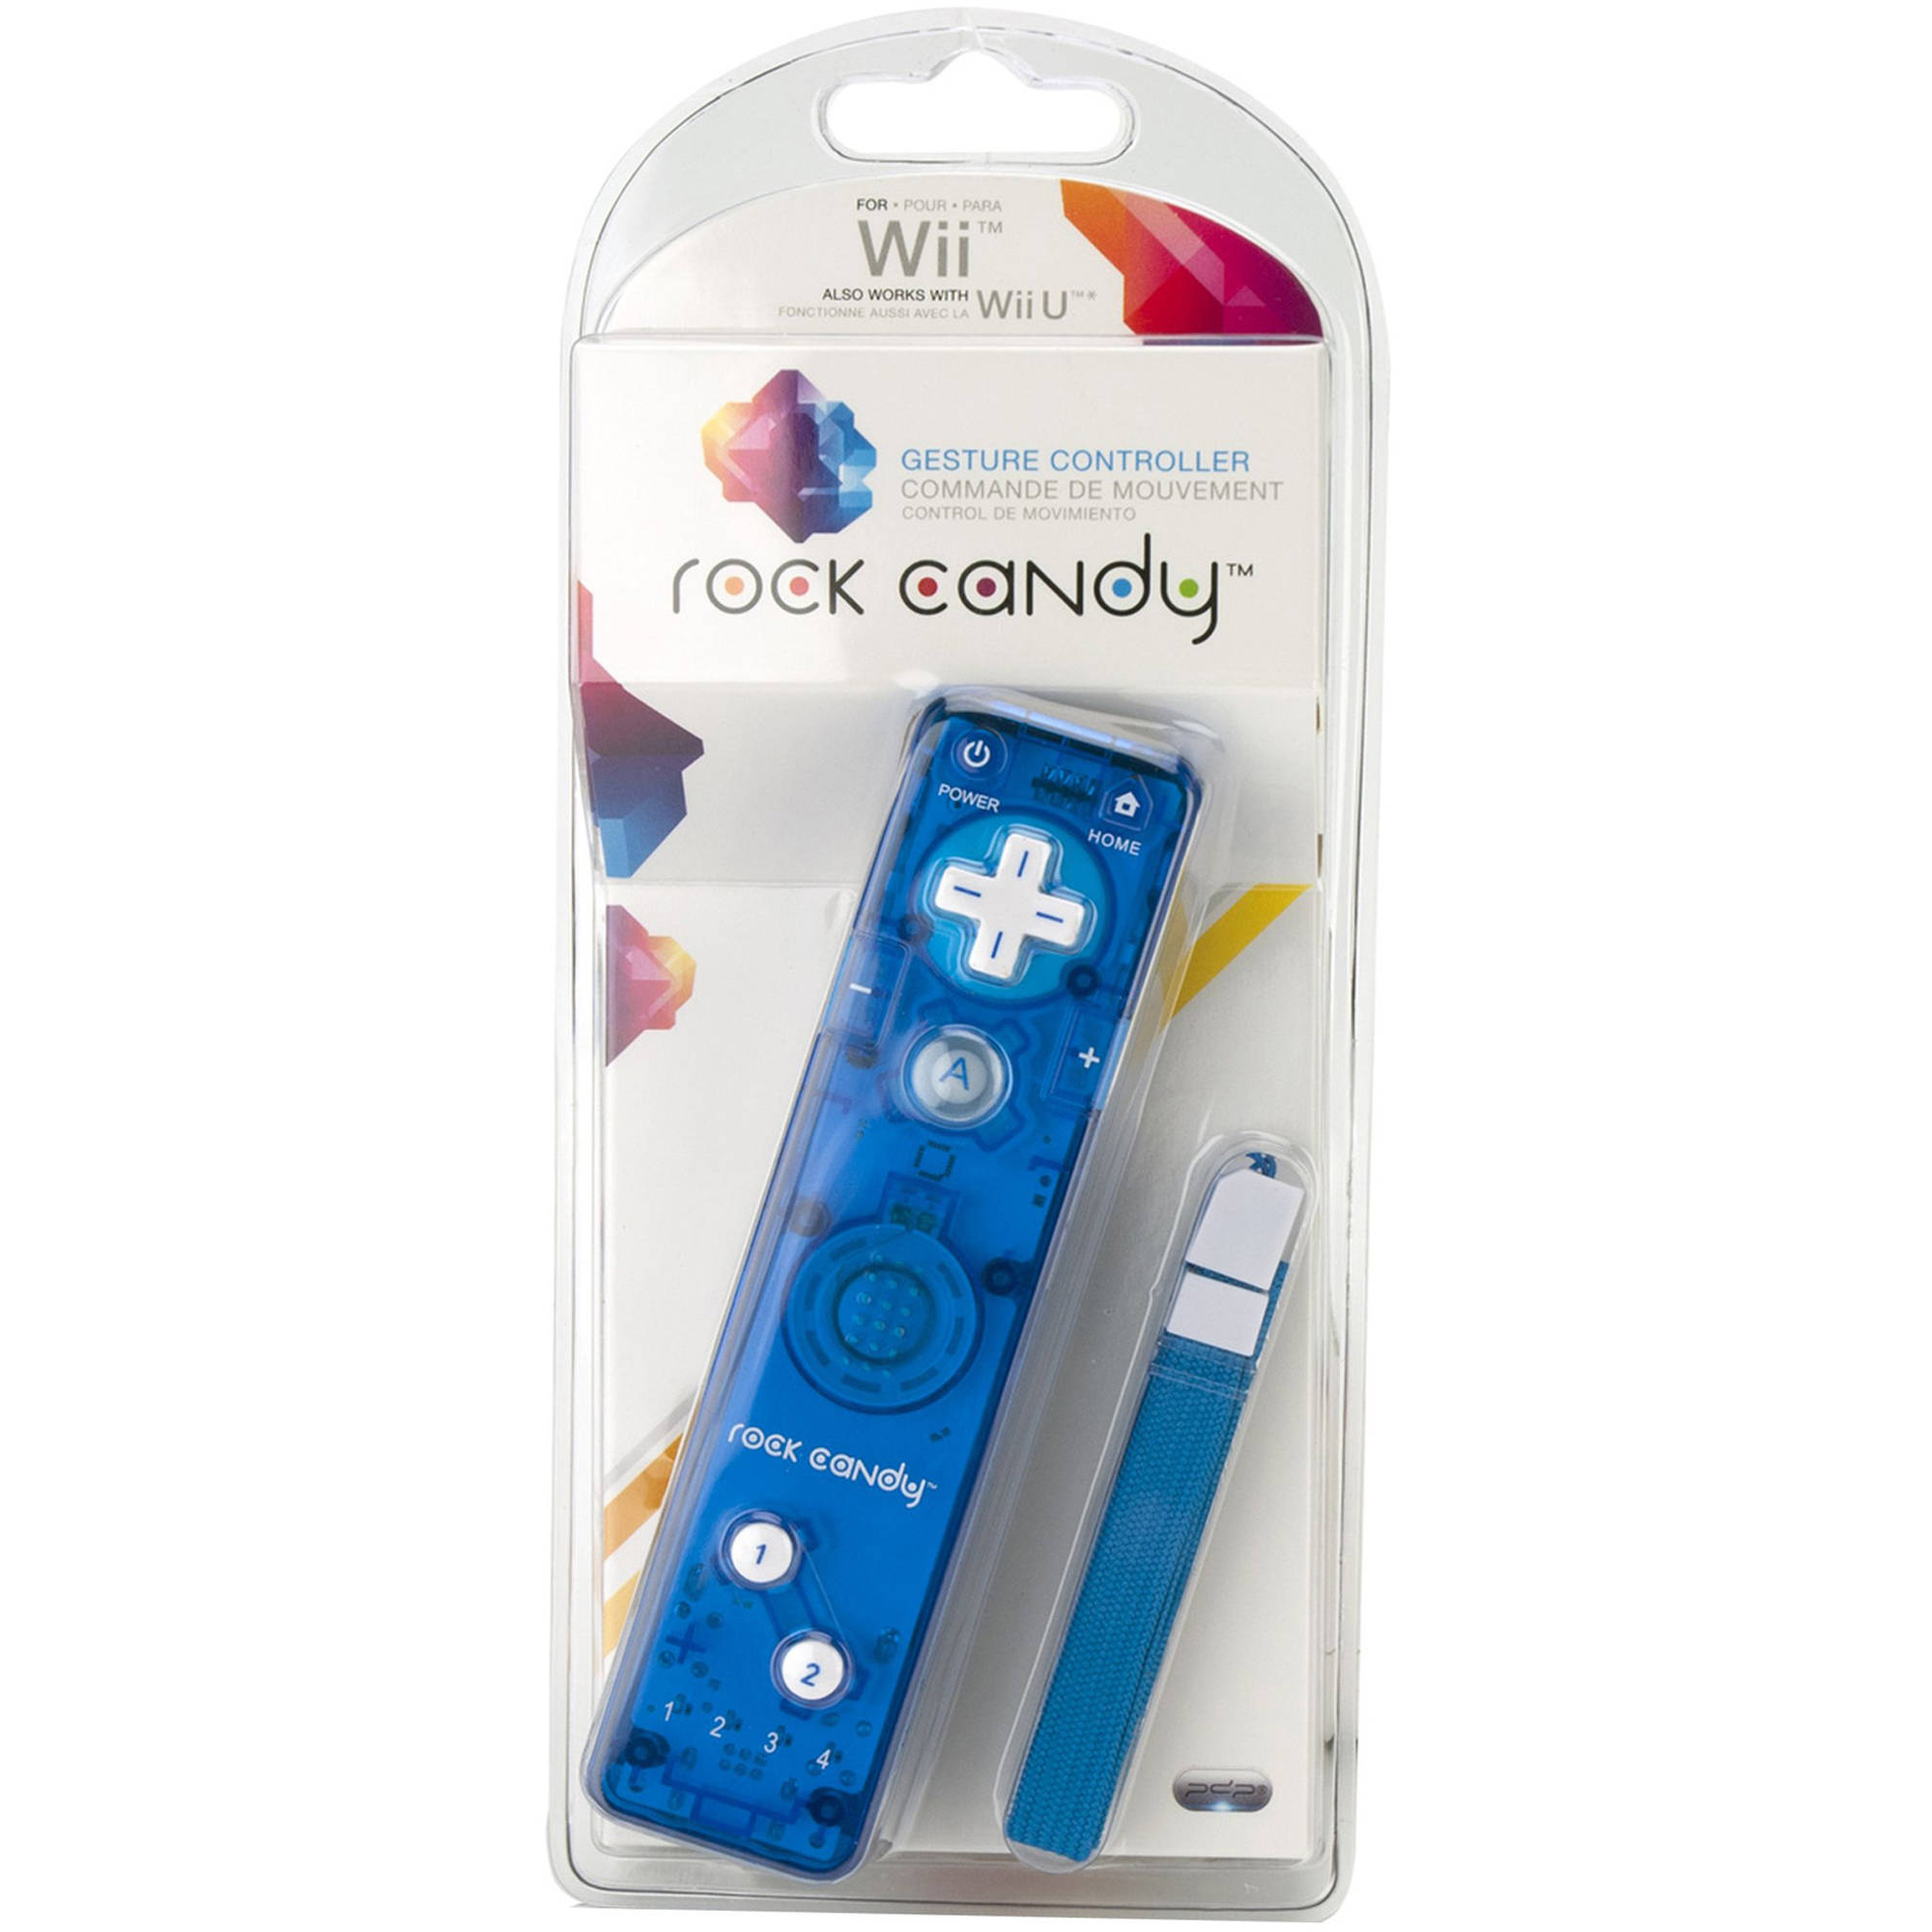 PDP Rock Candy Gesture Controller for Wii/Wii U 8560B, Blueberry Boom